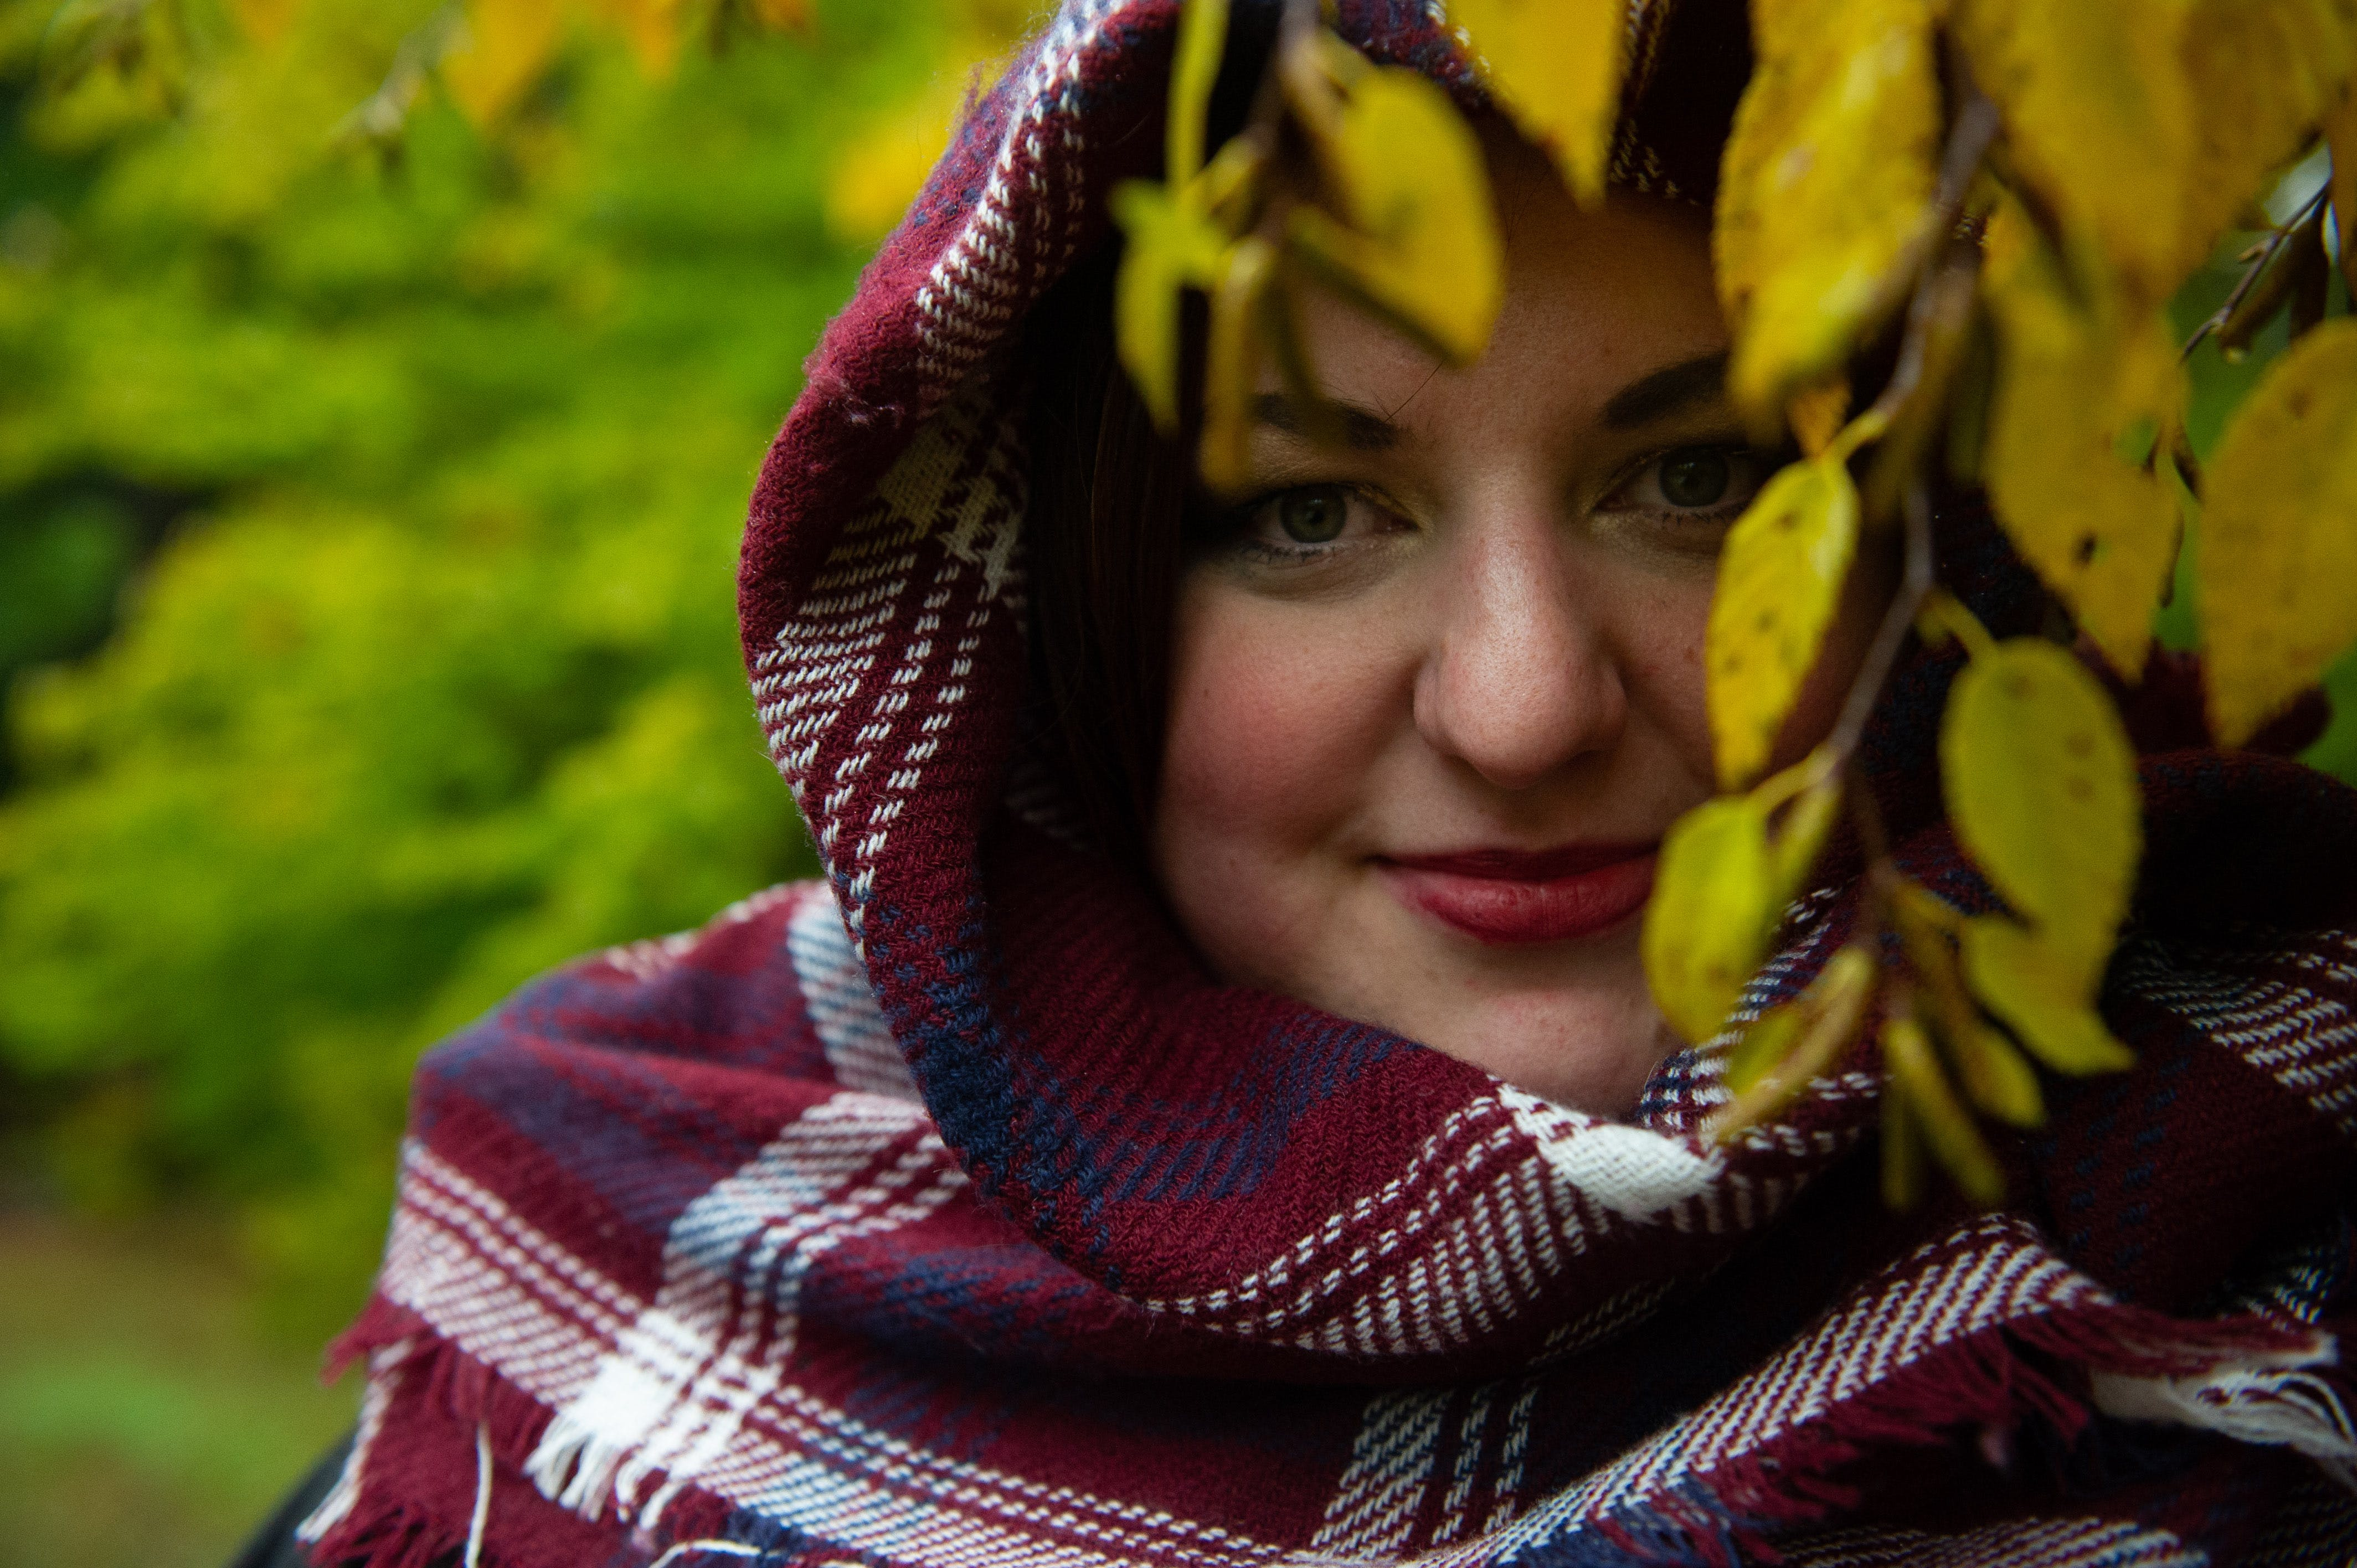 Woman Wearing Red and White Plaid Headscarf